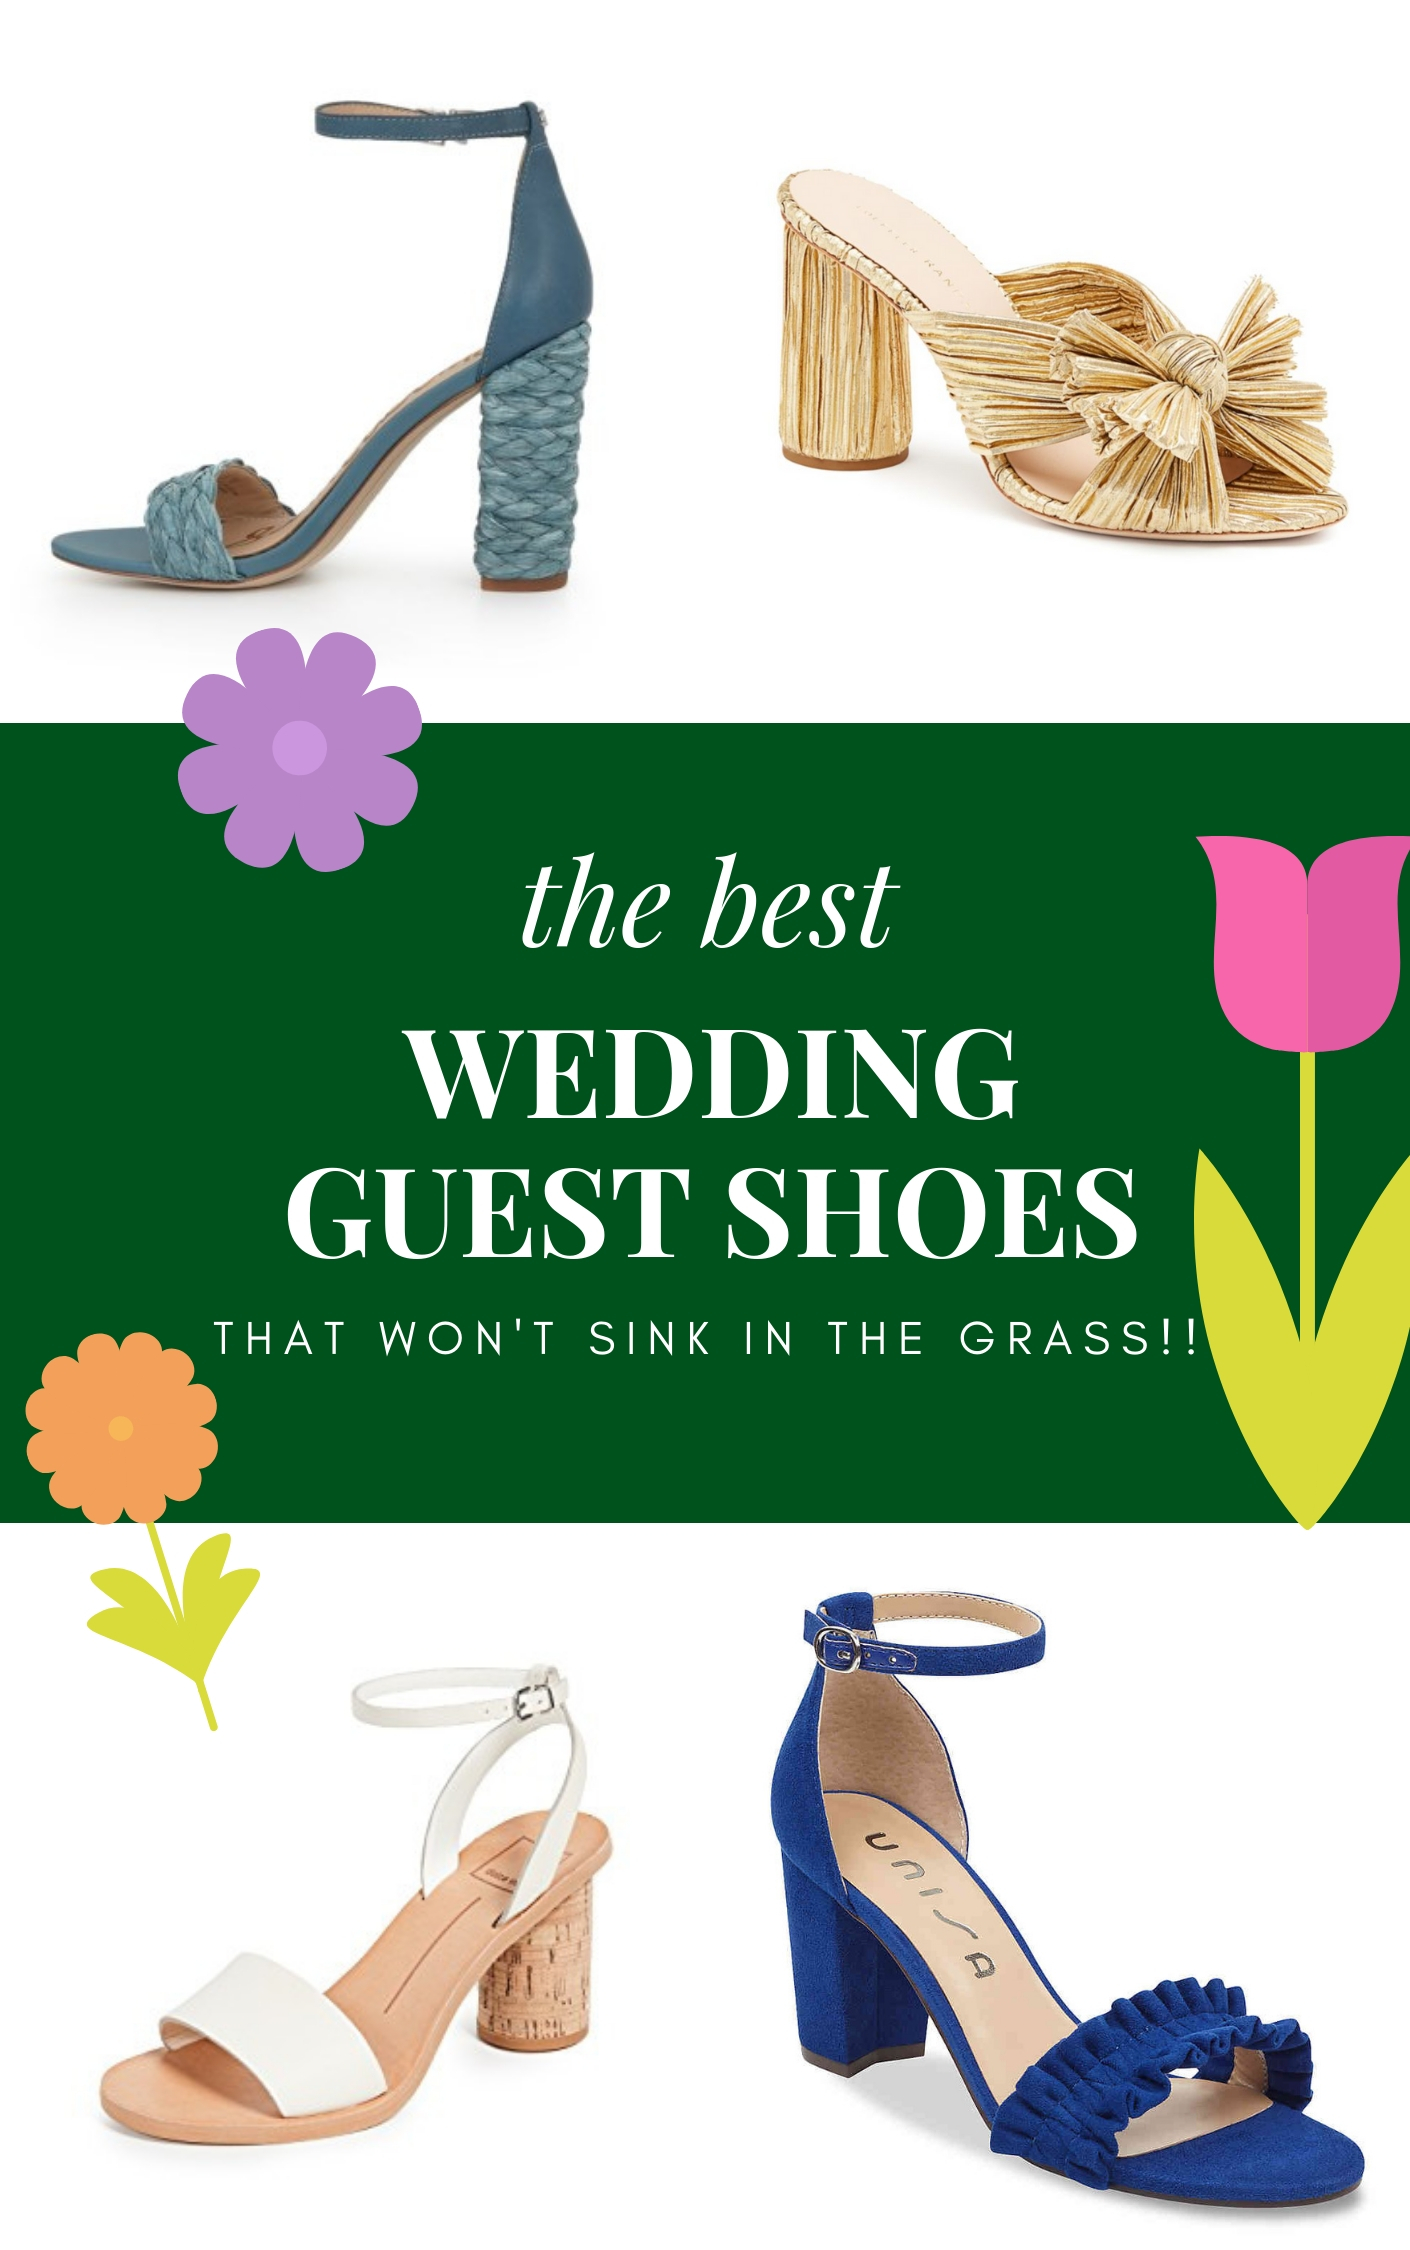 bf5d3782f85 The Best Wedding Guest Shoes (Including heels that don't sink in grass!)